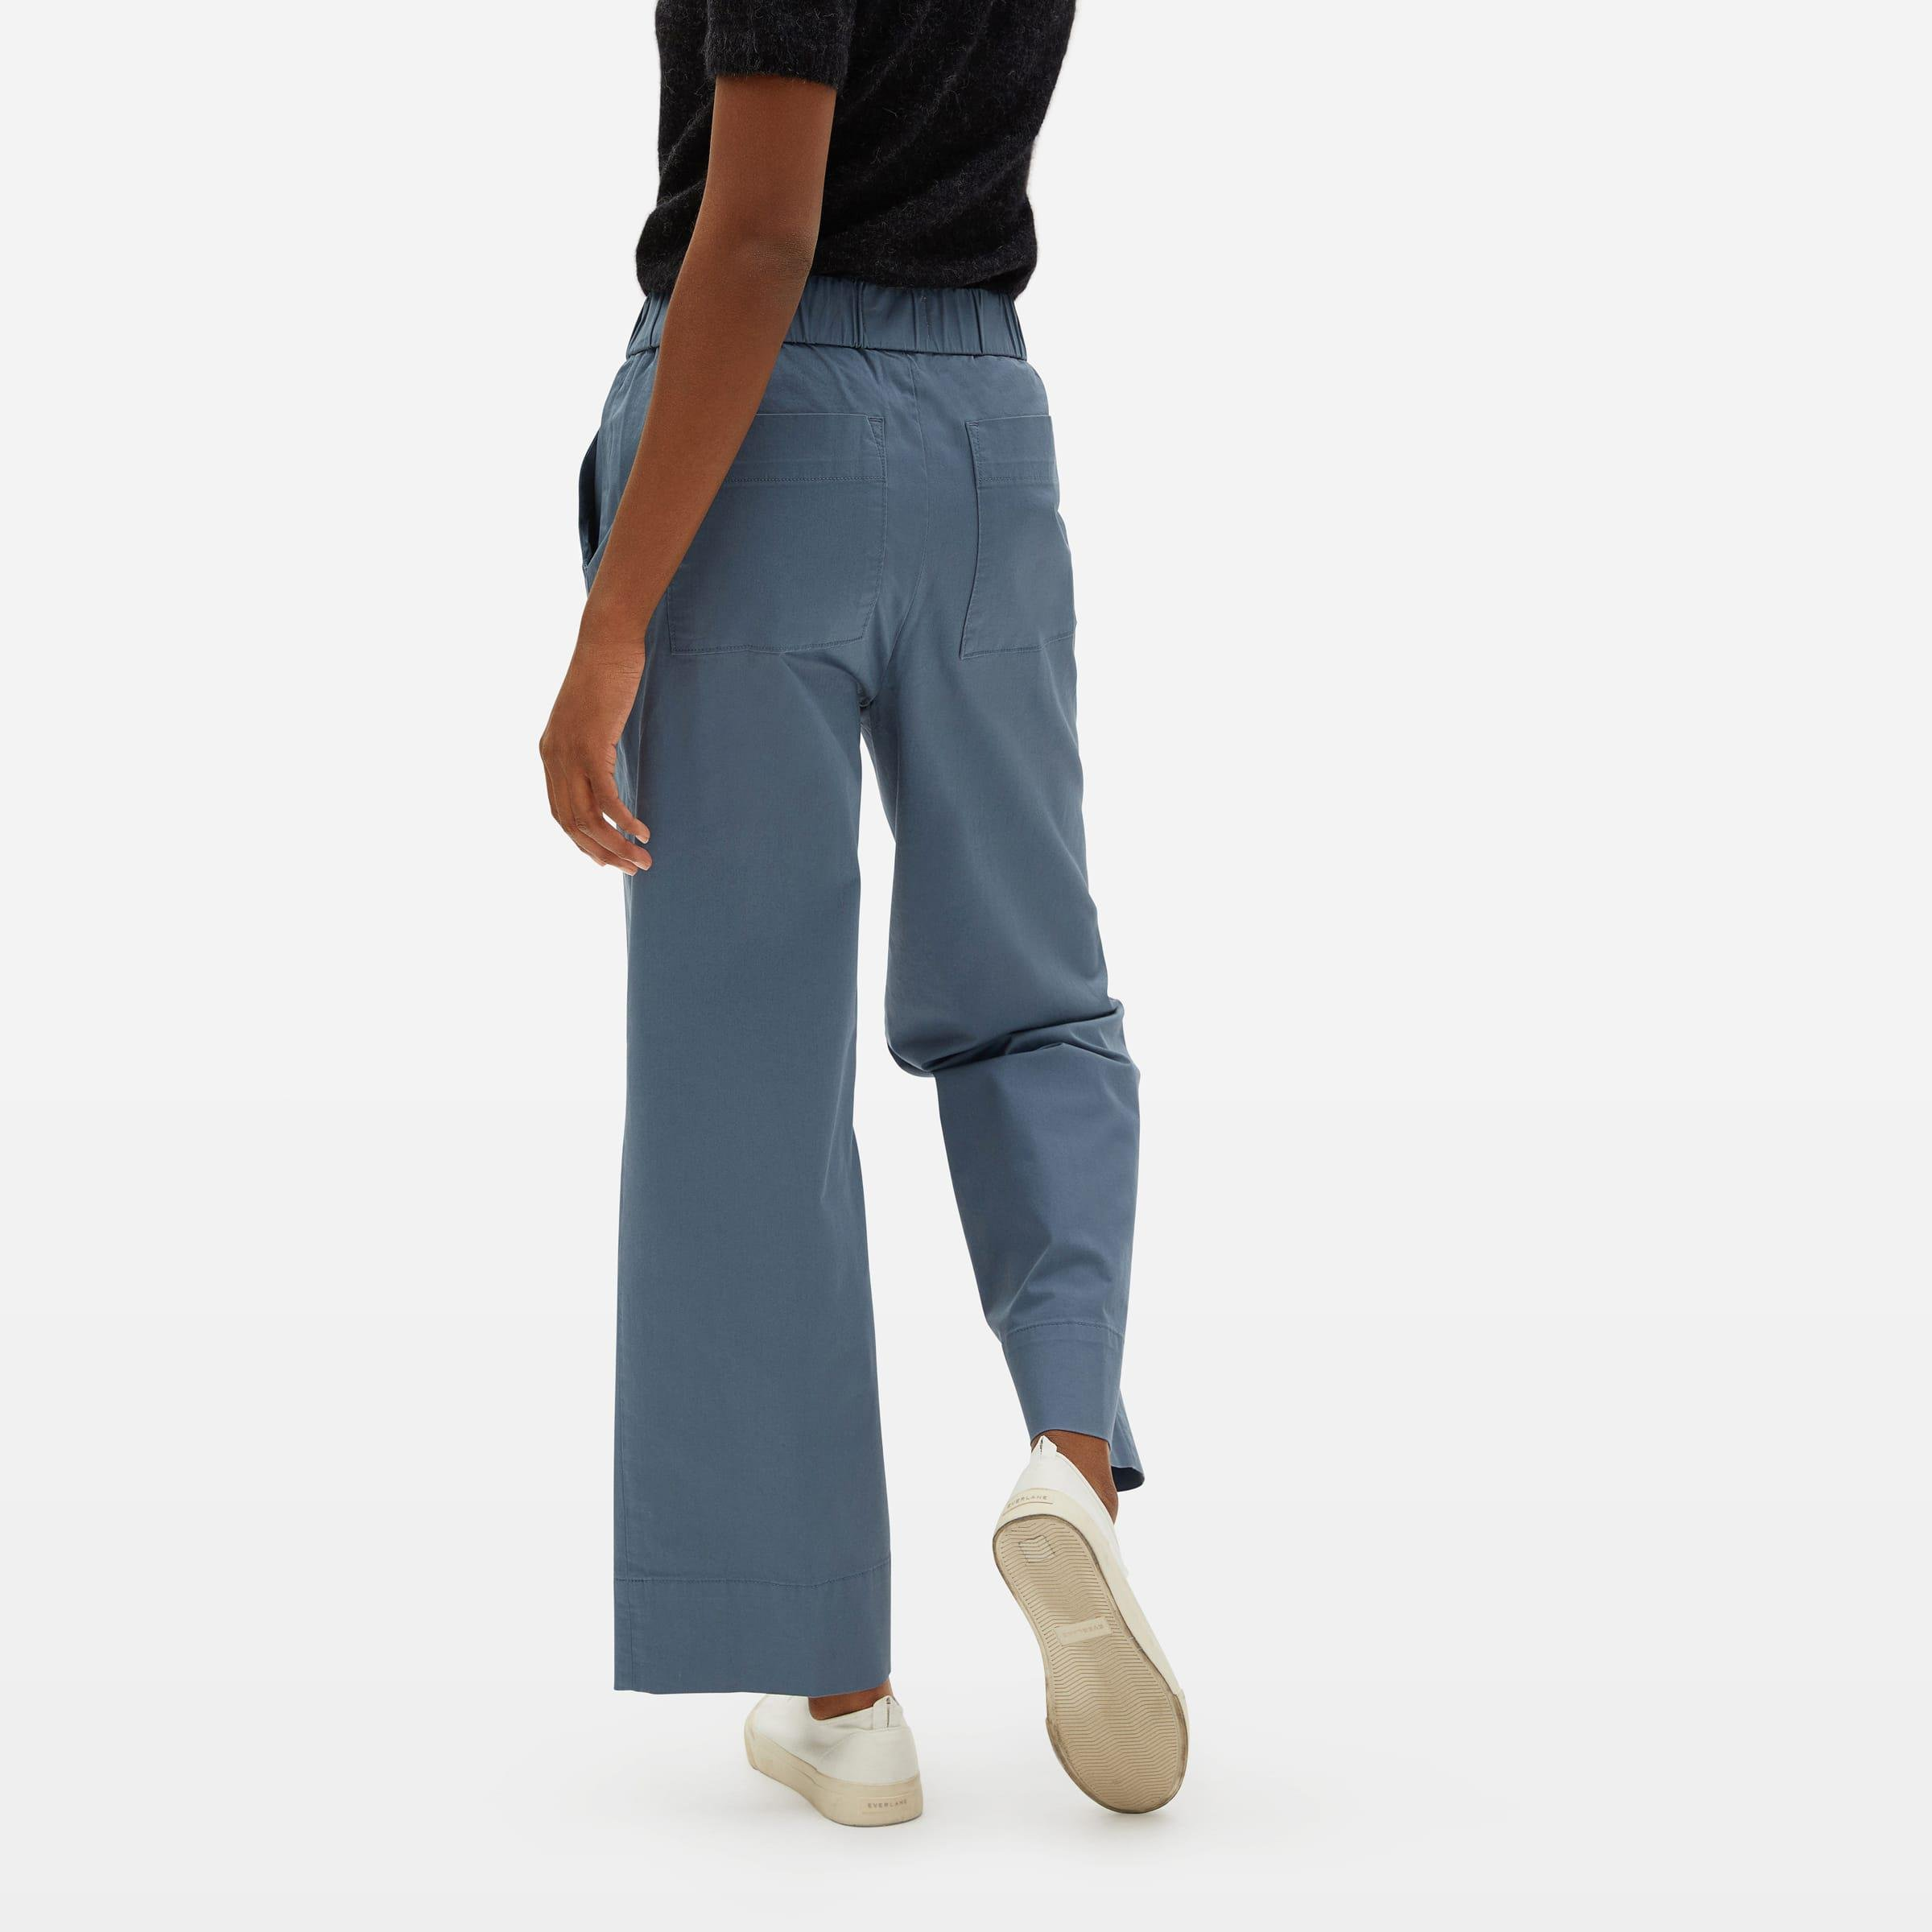 The Easy Pant 2